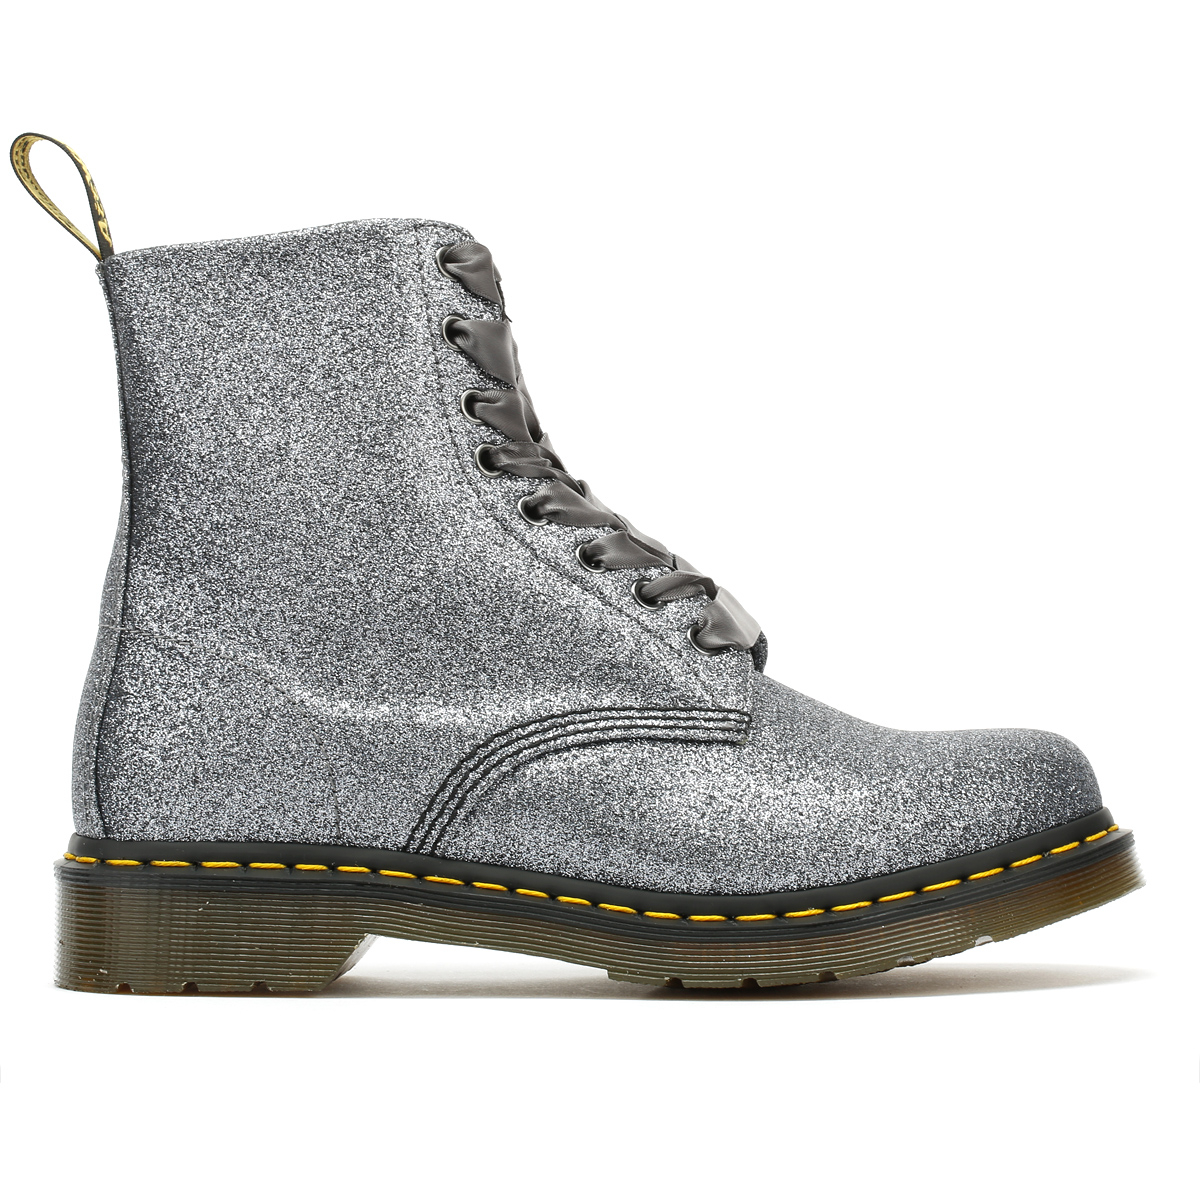 eb304df527 Dr. Martens Womens Pascal Boots Grey Glitter 1460 Lace Up Casual Winter  Shoes